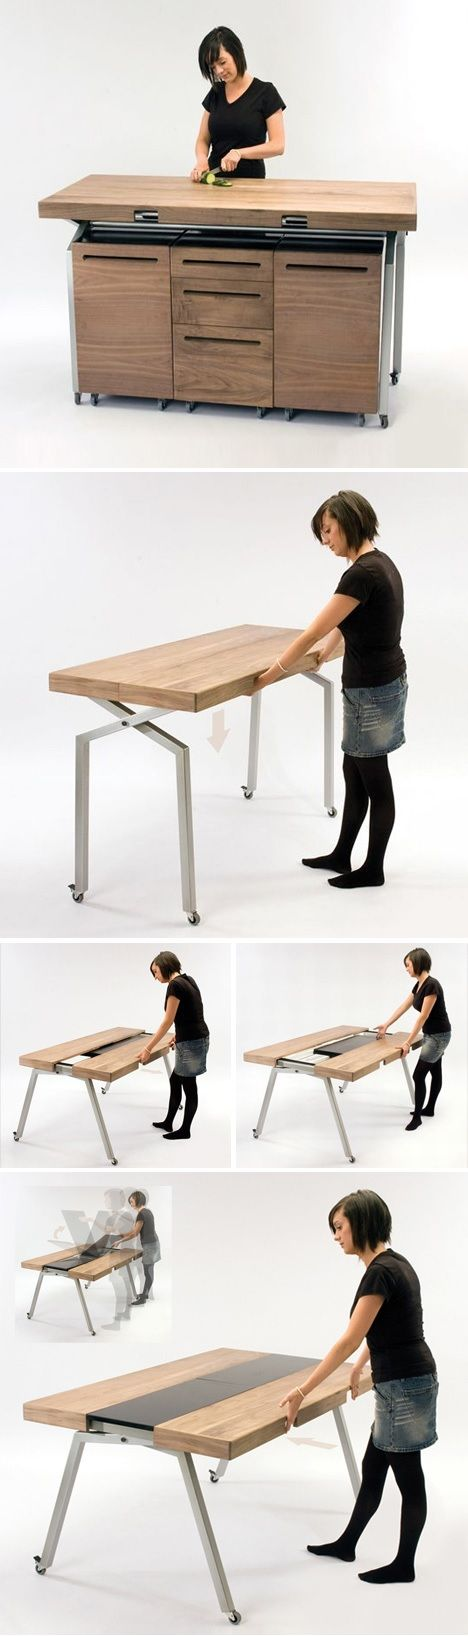 kitchen workspace converts to dining table dornobcom  : 142fc4c068eadc9ecc761228c2918b03 from www.pinterest.se size 468 x 1636 jpeg 147kB